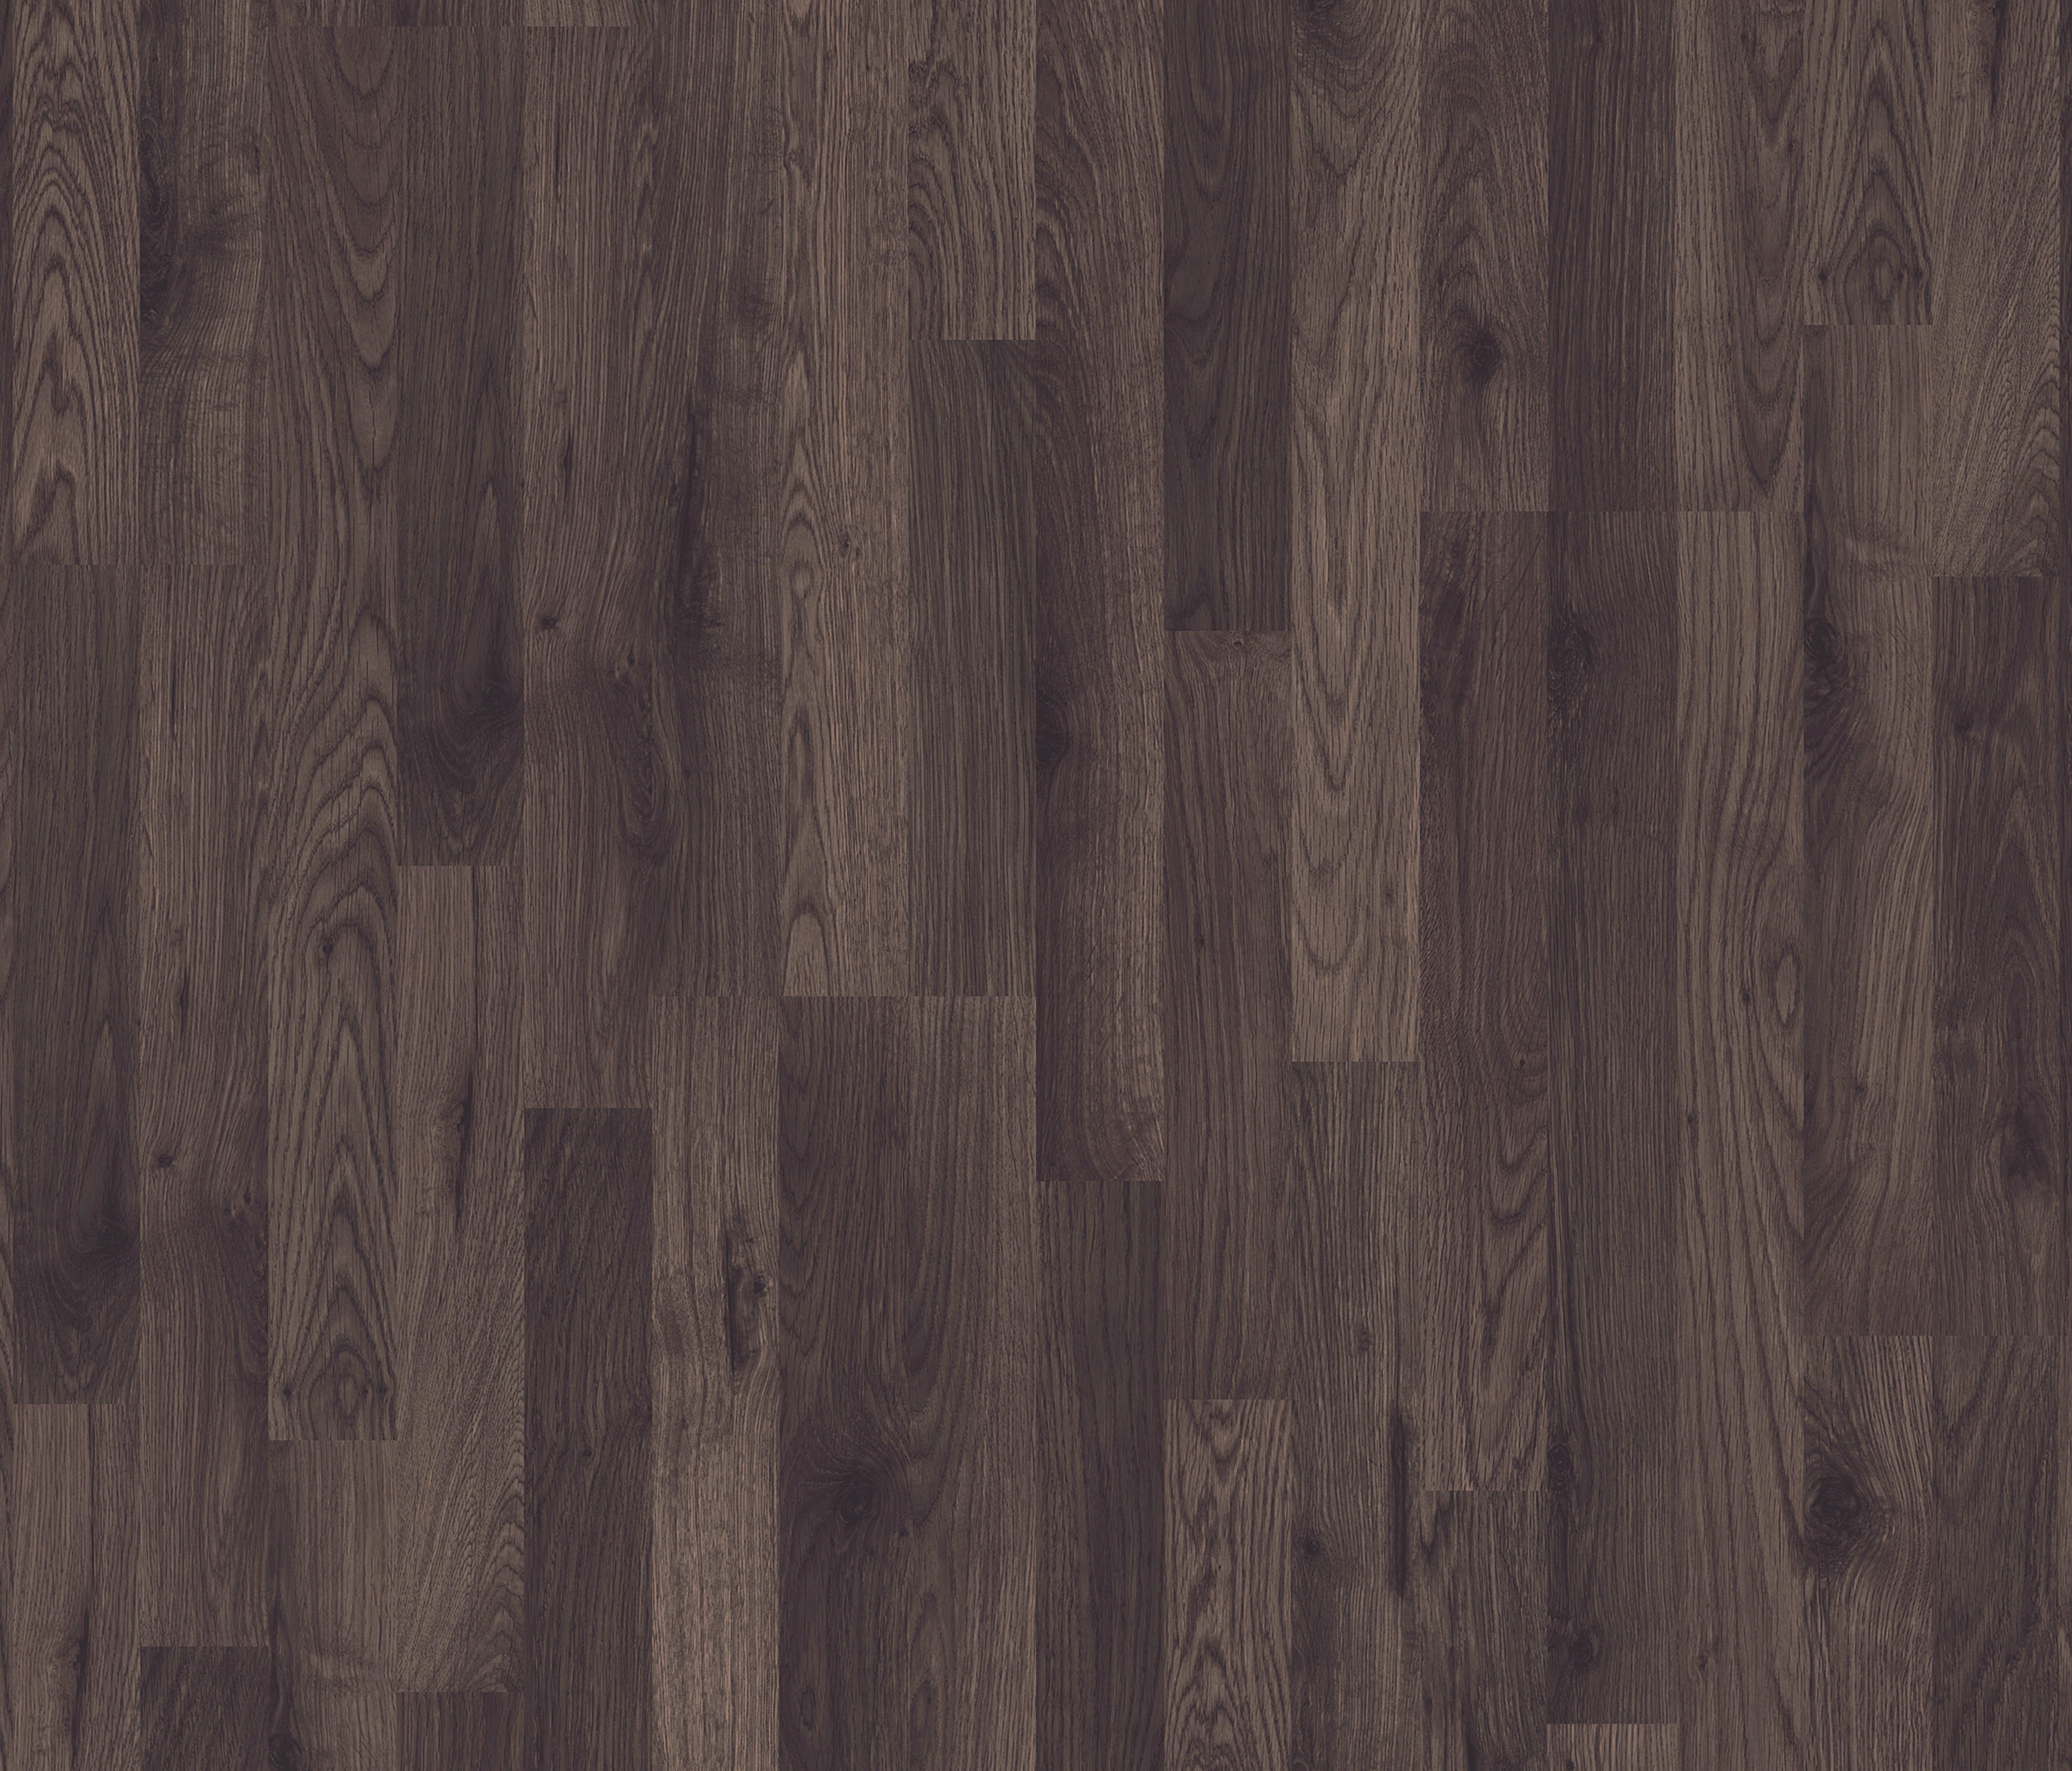 Domestic Extra Dark Oak Rustic Laminate Flooring From